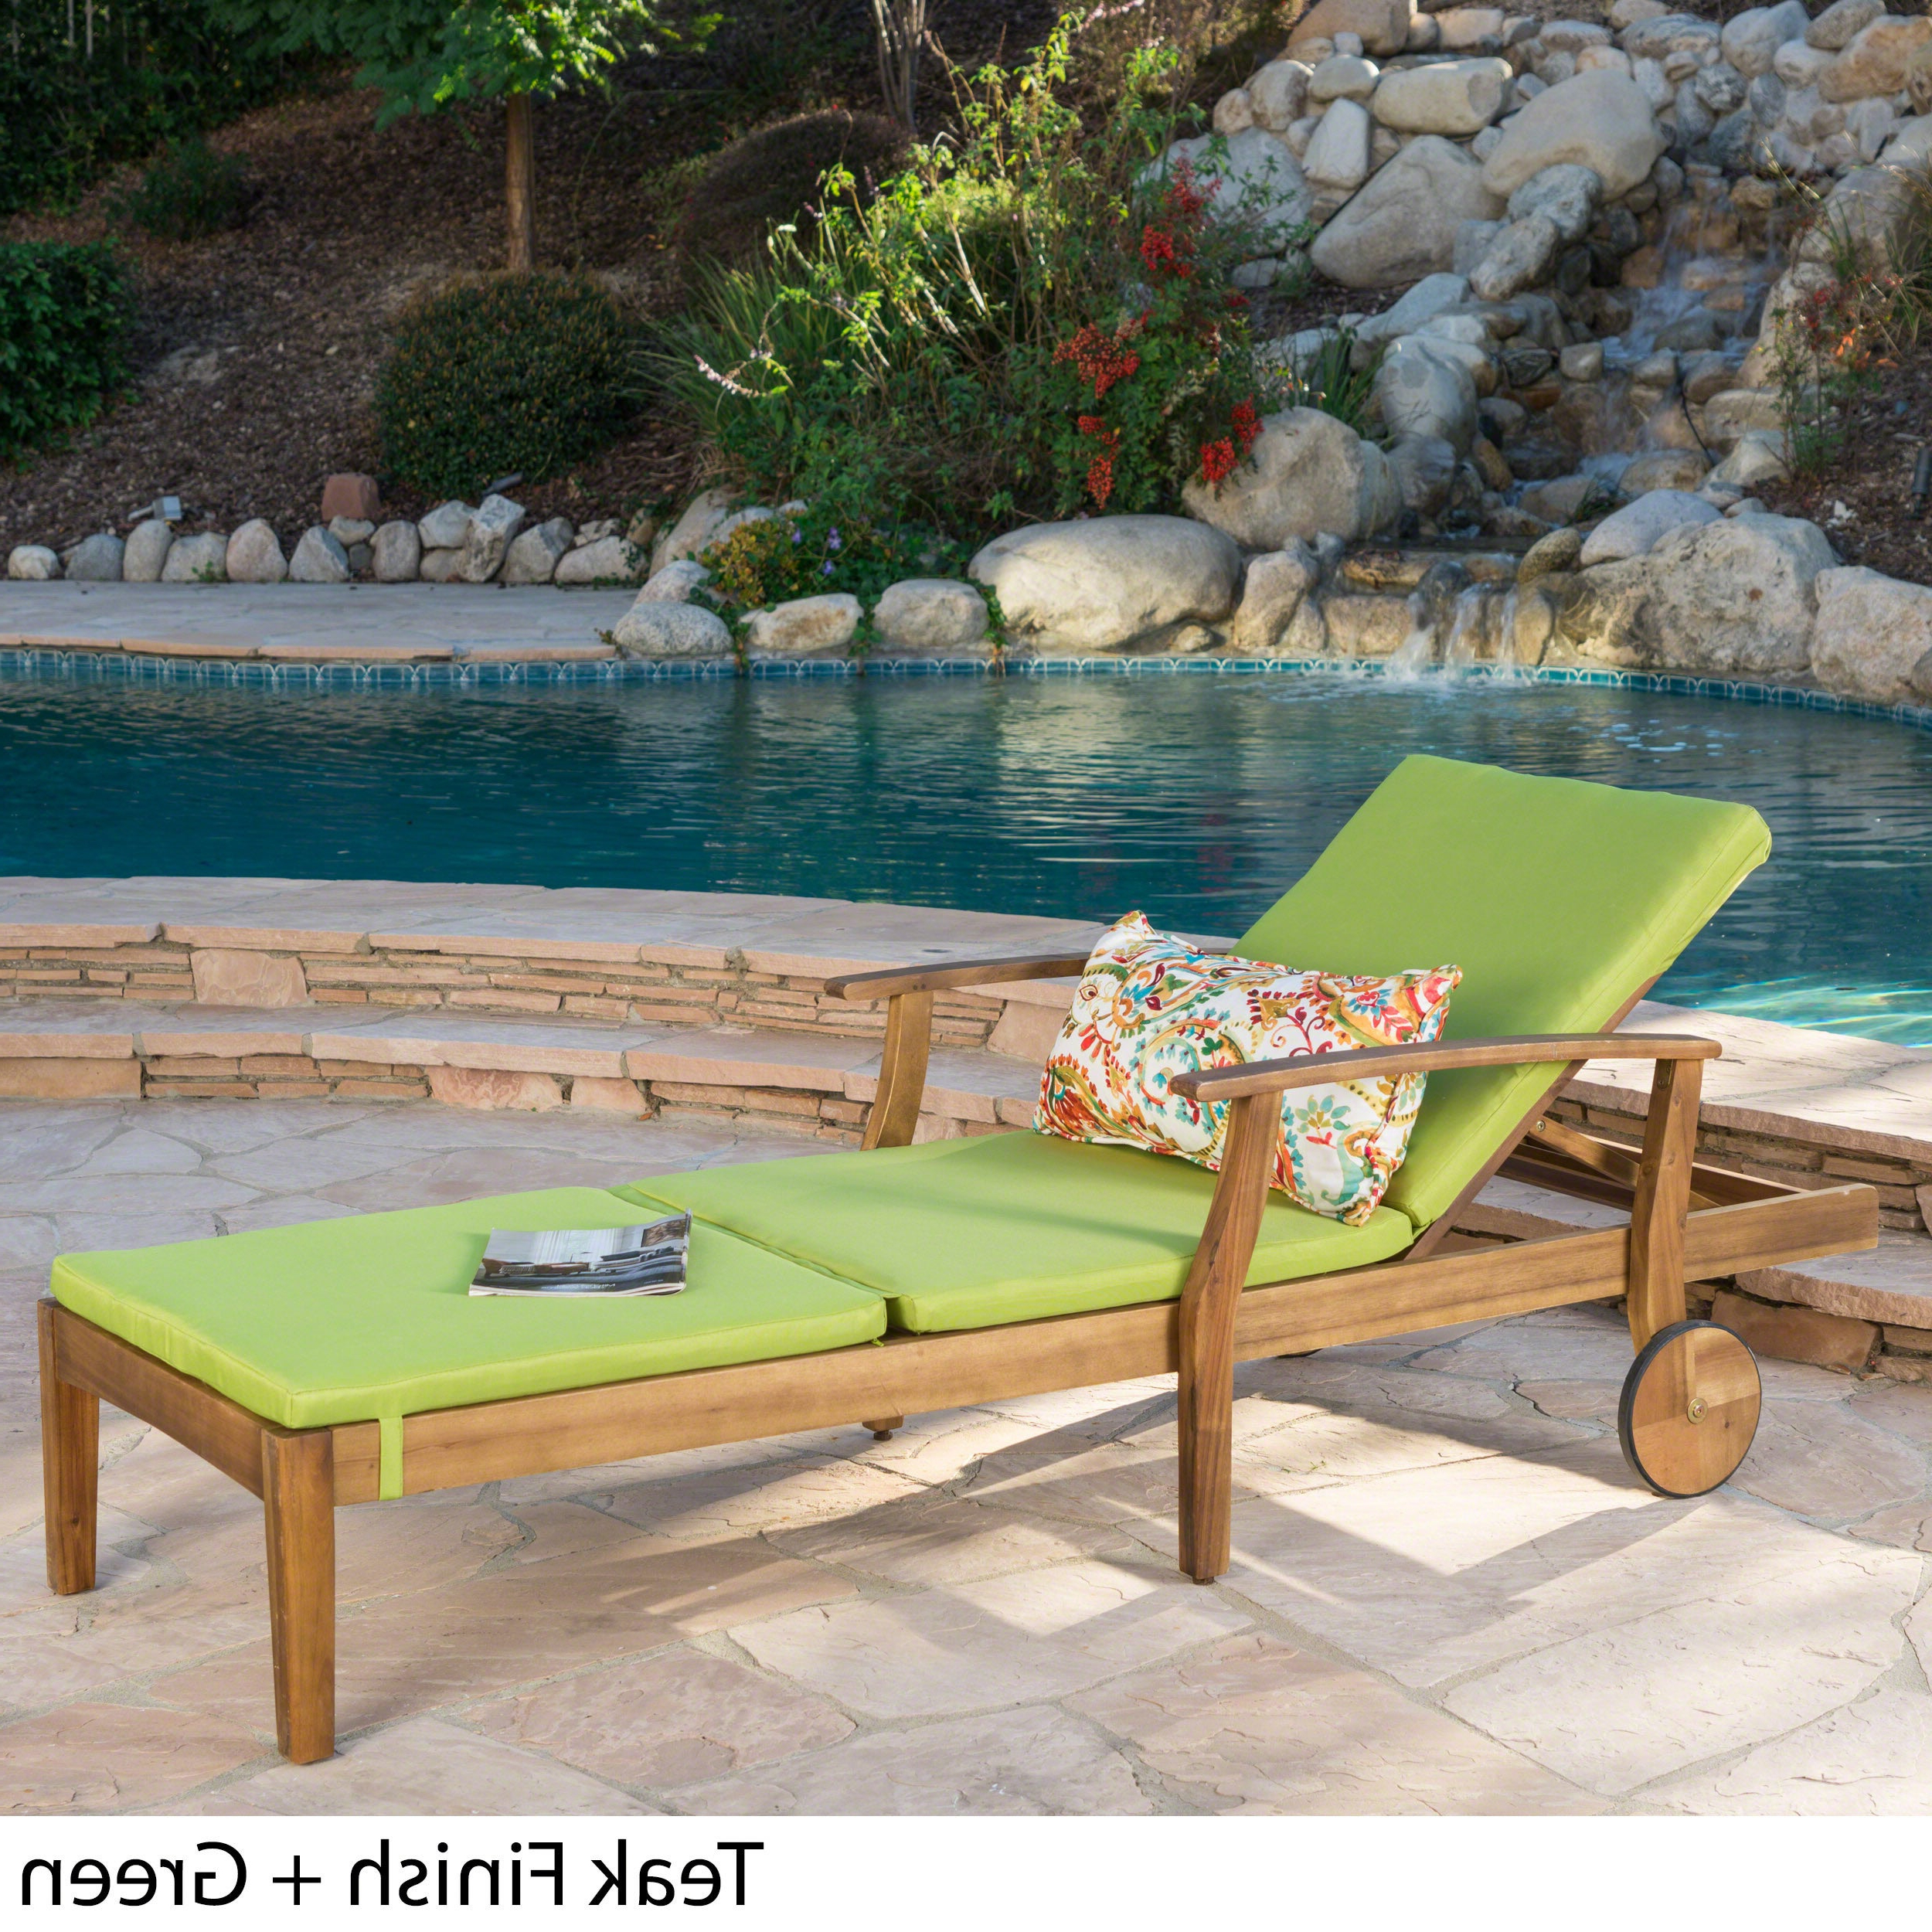 Most Popular Perla Outdoor Acacia Wood Chaise Lounge With Cushion Intended For Perla Outdoor Acacia Wood Chaise Lounge With Cushionchristopher Knight Home (View 3 of 25)